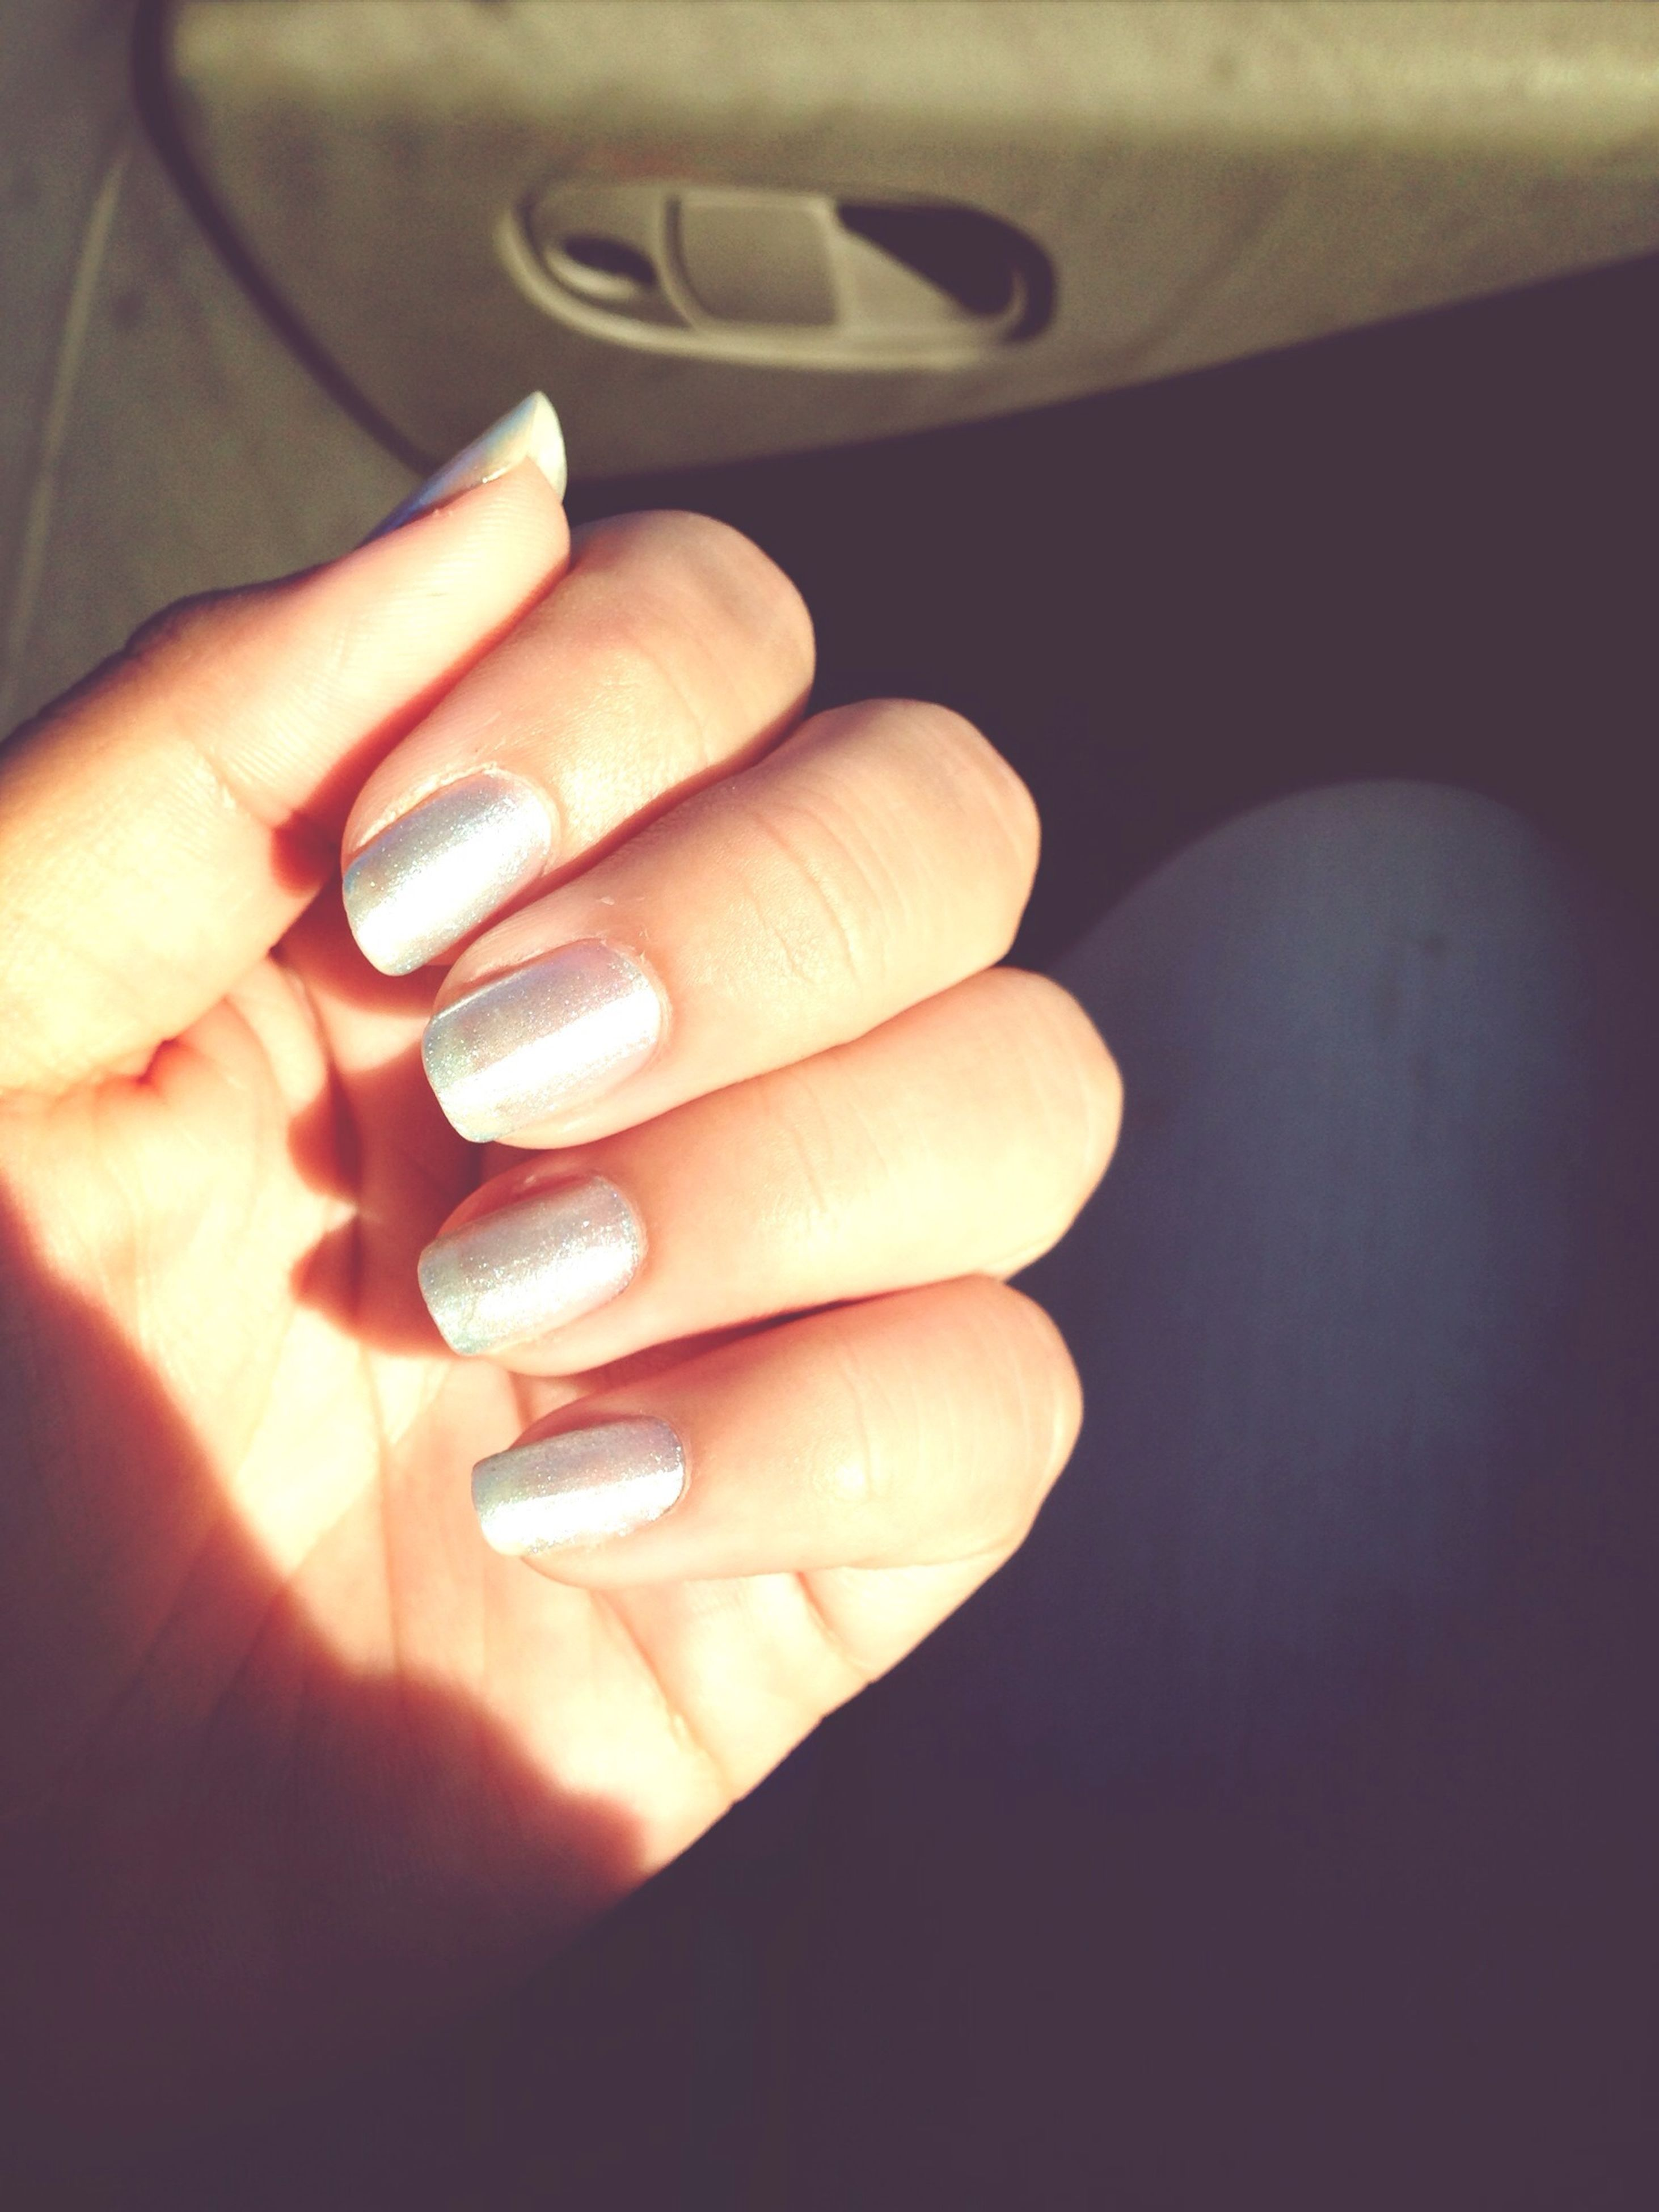 person, part of, indoors, human finger, holding, cropped, close-up, unrecognizable person, ring, personal perspective, showing, lifestyles, focus on foreground, nail polish, high angle view, table